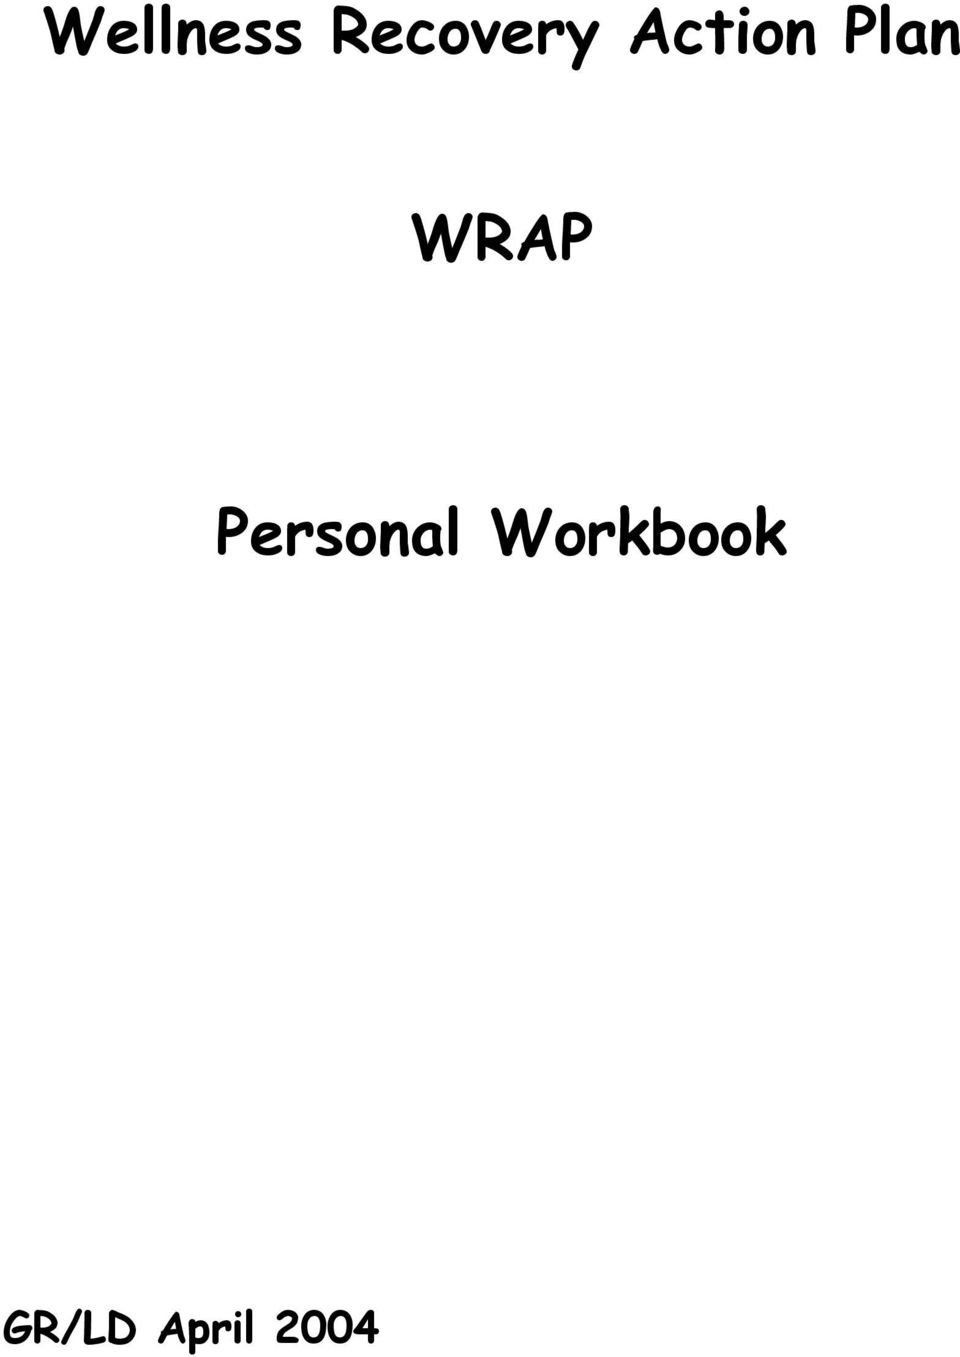 Wellness Recovery Action Plan Pdf Elegant Wellness Recovery Action Plan Wrap Personal Workbook Pdf In 2020 Wellness Recovery Action Plan How To Plan Action Plan